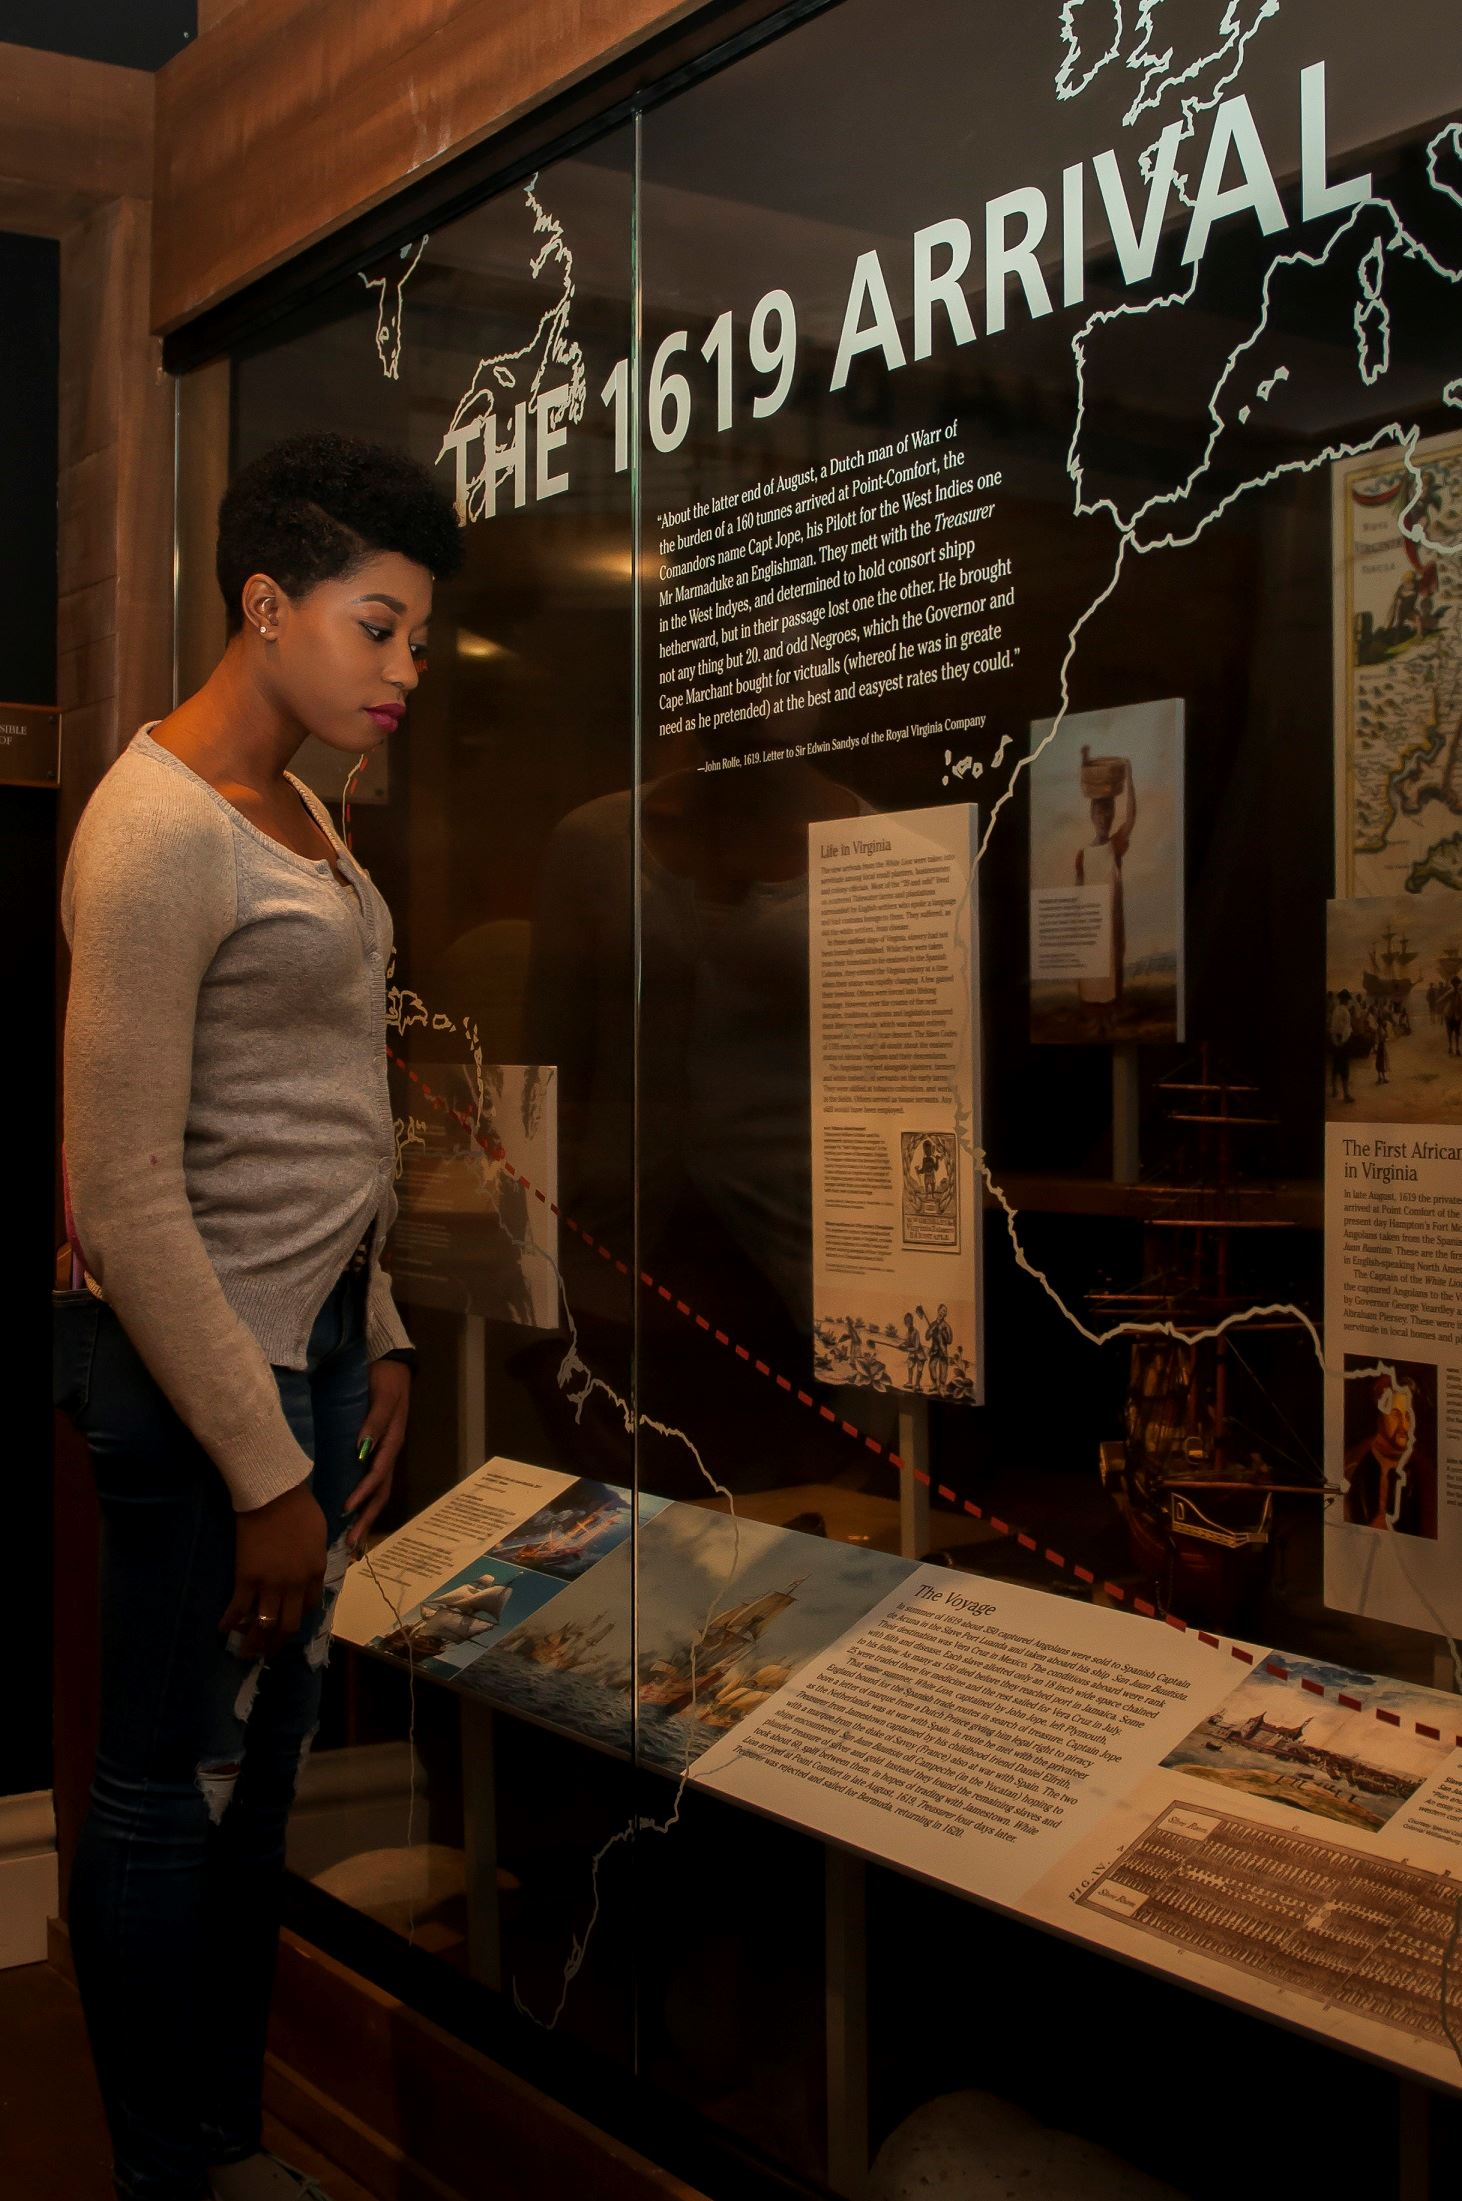 ~ Photo credit: 1619 exhibit in the Hampton History Galleries. Photo courtesy of the Hampton Convention and Visitor Bureau.